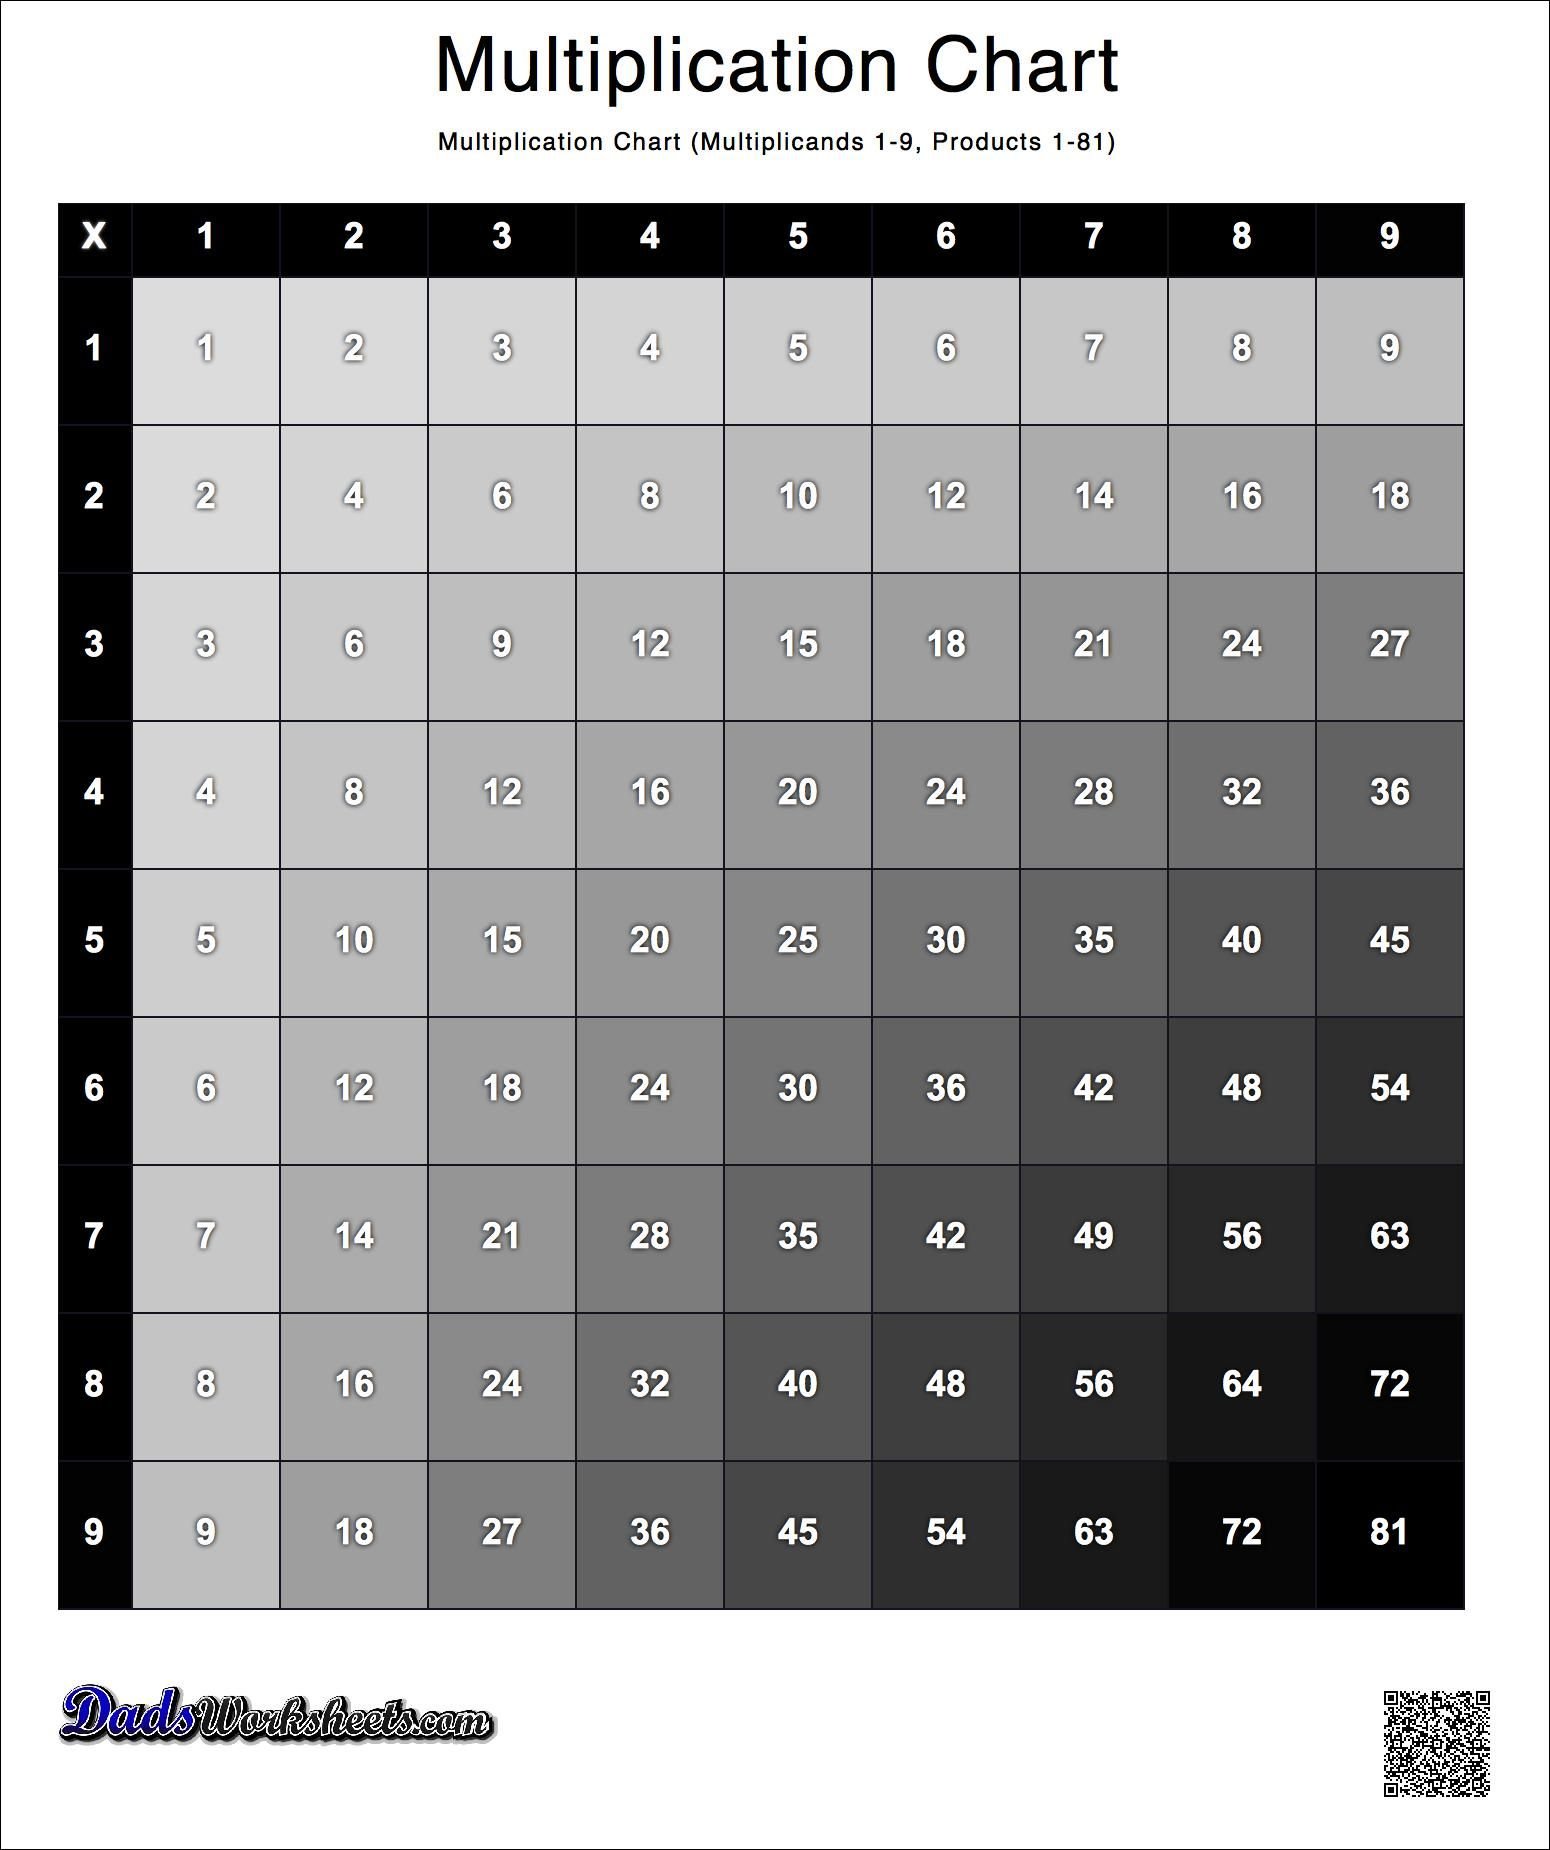 These Multiplication Charts Present The Multiplication